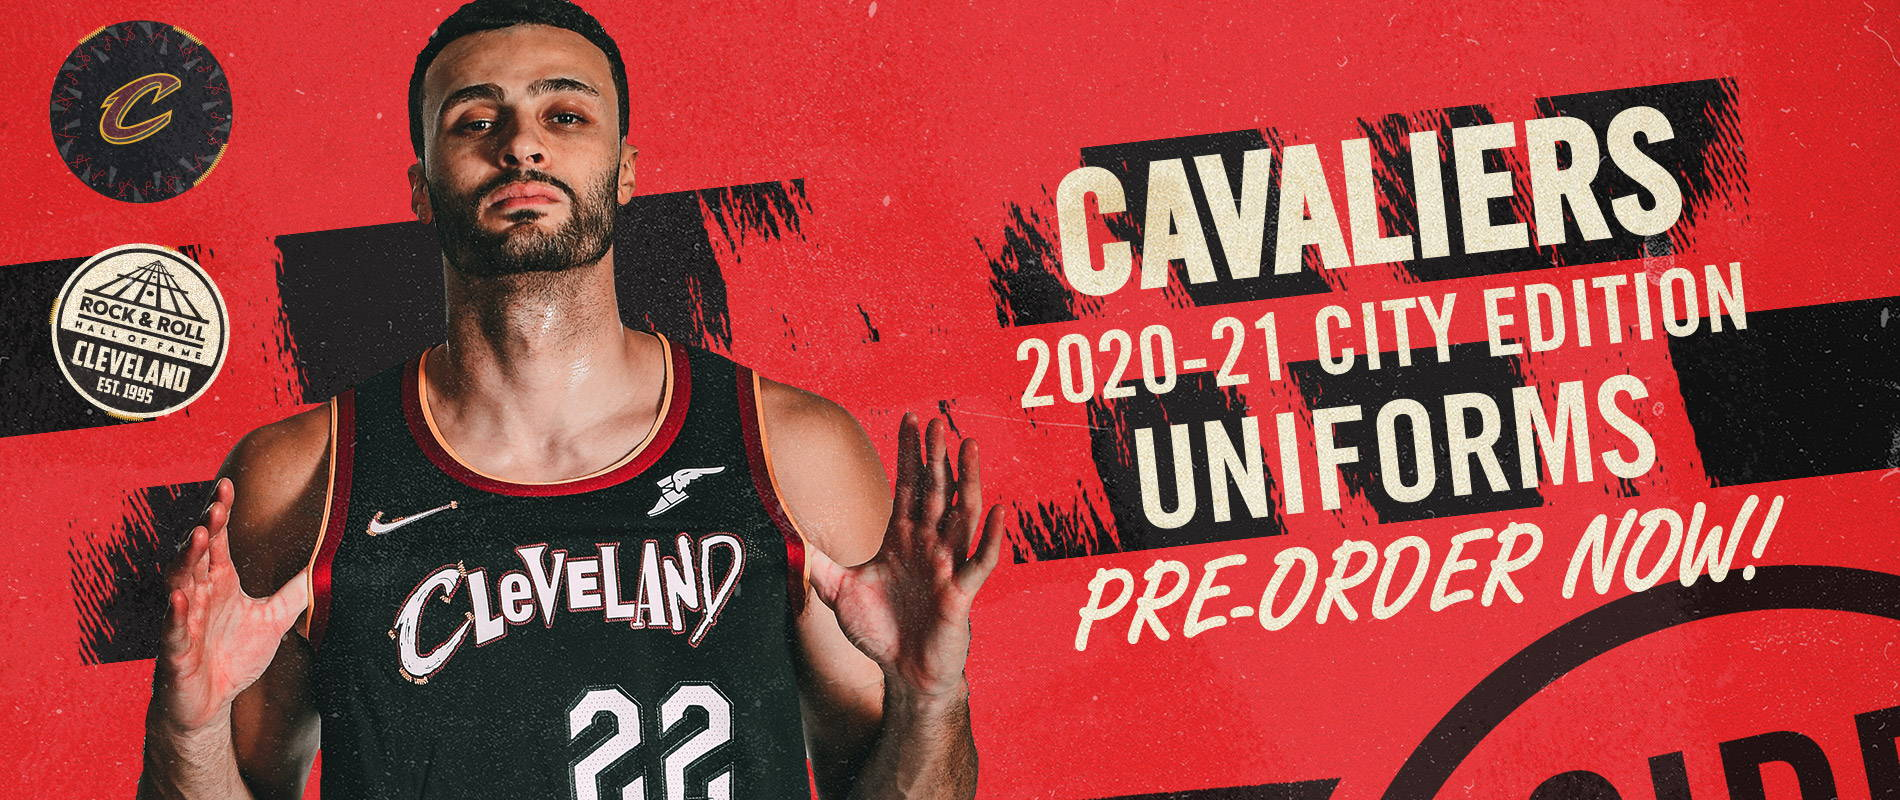 The Cleveland Cavaliers 2020-2021 City Edition Uniforms are available for pre-order NOW!